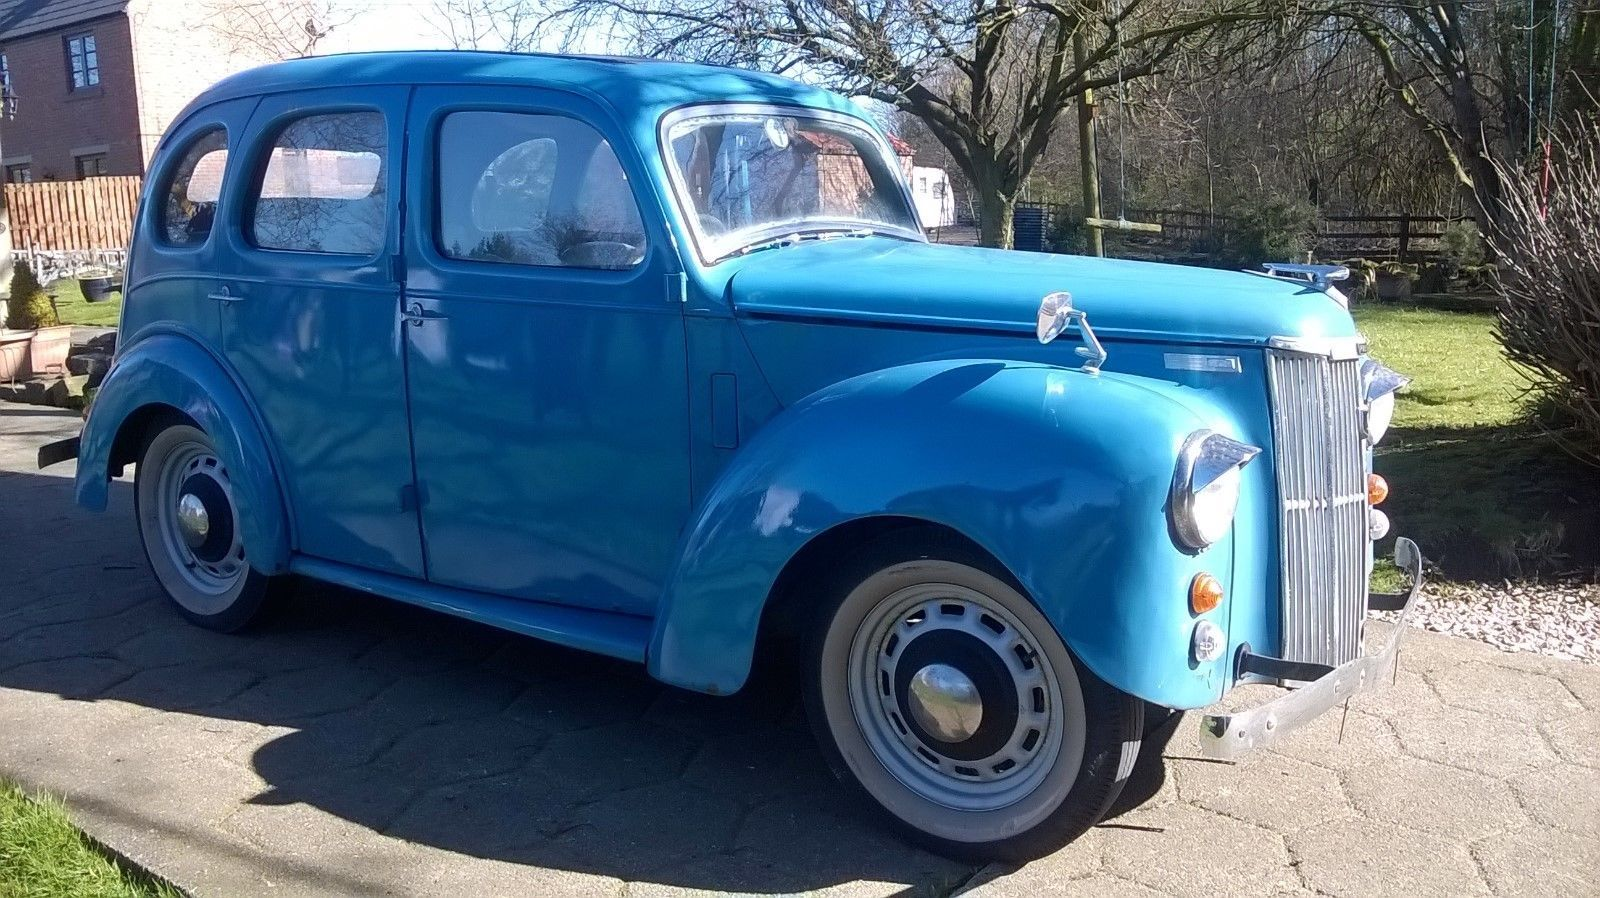 Ford prefect 1952 tax & mot exempt, classic | Ford, Cars and British car